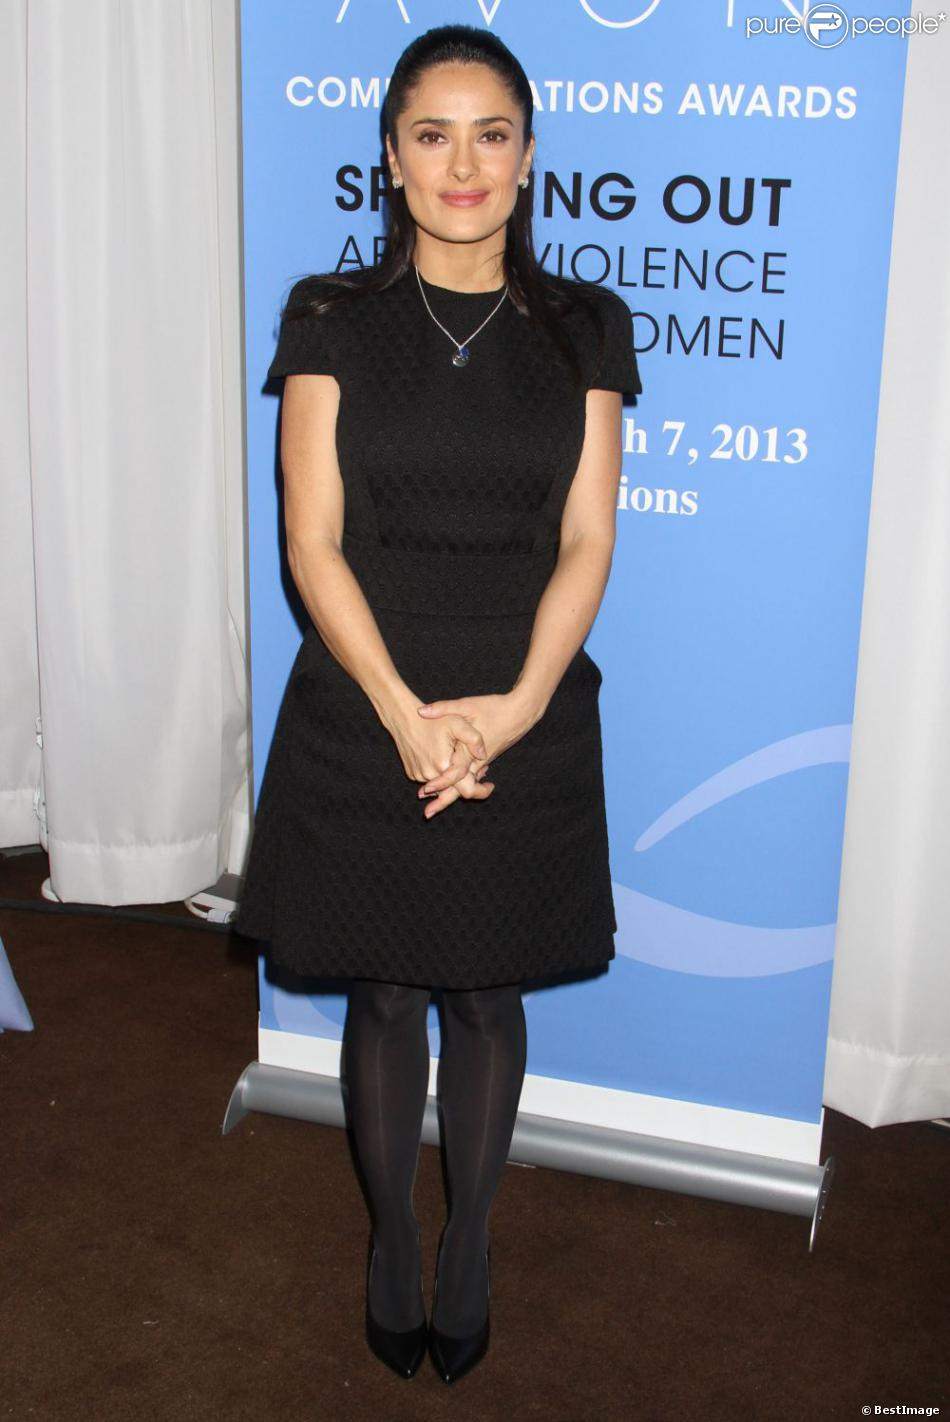 Salma Hayek, ambassadrice mondiale de la Avon Foundation for Women, s'engage contre les violences faites aux femmes et assiste aux Avon Communications Awards: Speaking Out About Violence Against Women au siège de l'ONU. New York, le 7 mars 2013.